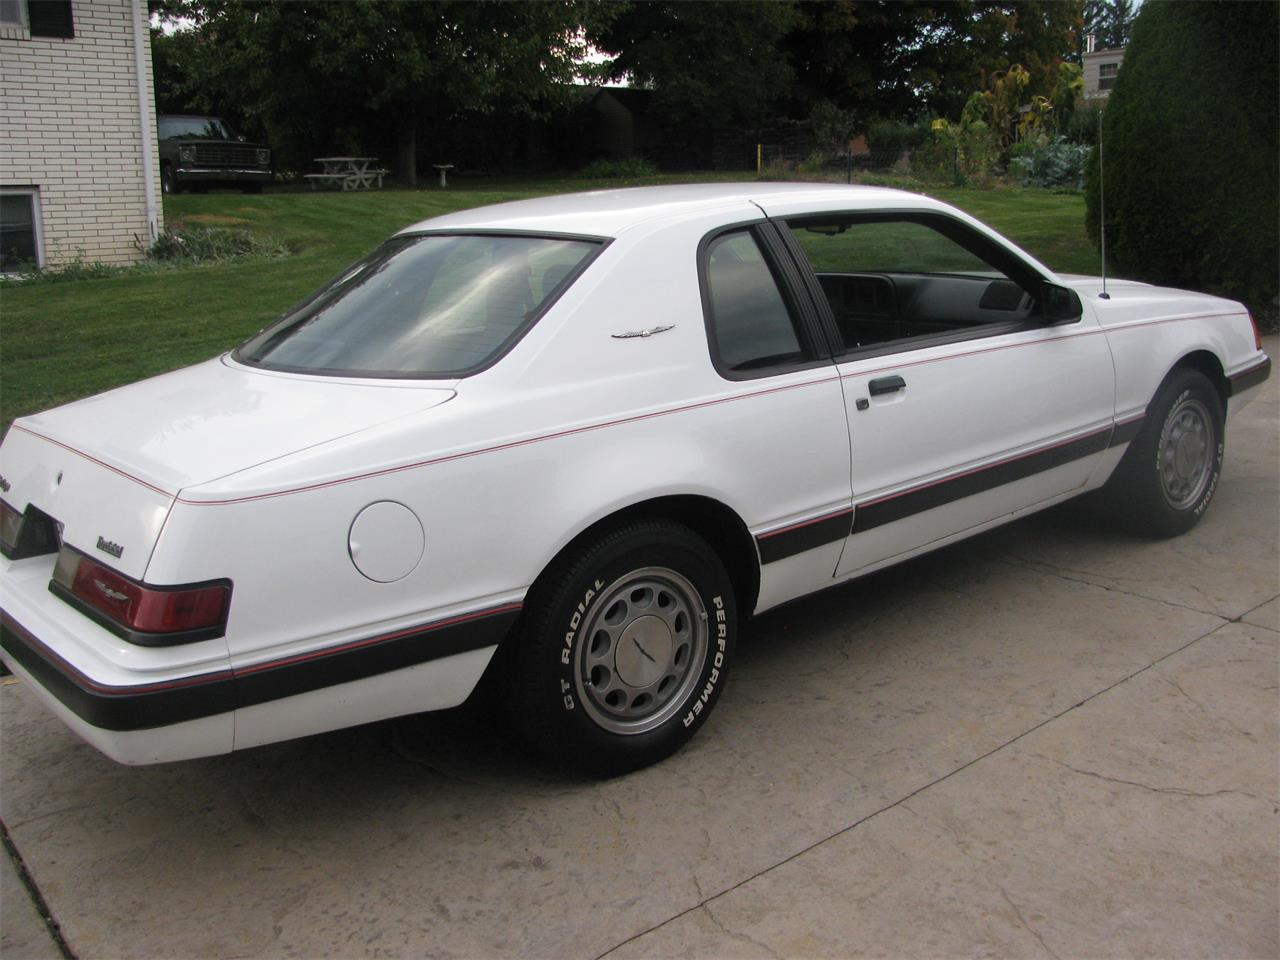 Large Picture of 1986 Ford Thunderbird  - $4,500.00 Offered by a Private Seller - KHON